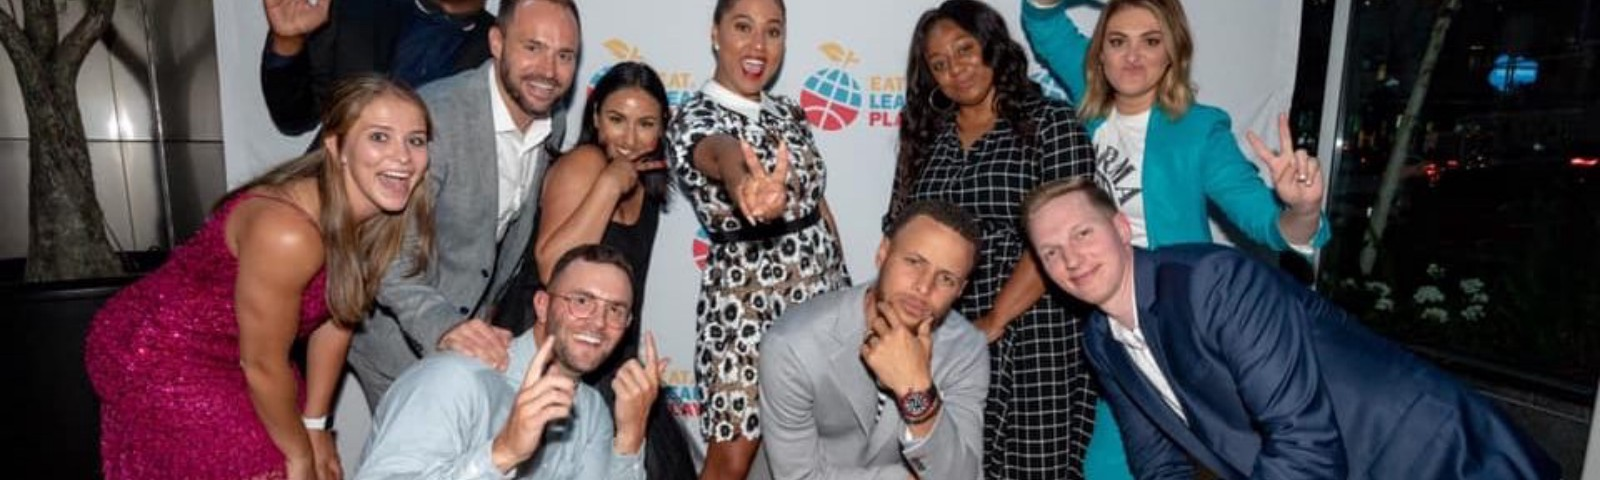 Members of Eat. Learn. Play. Foundation. including Steph and Ayesha Curry, and Bryant Barr '10 with intern Katie Turner.